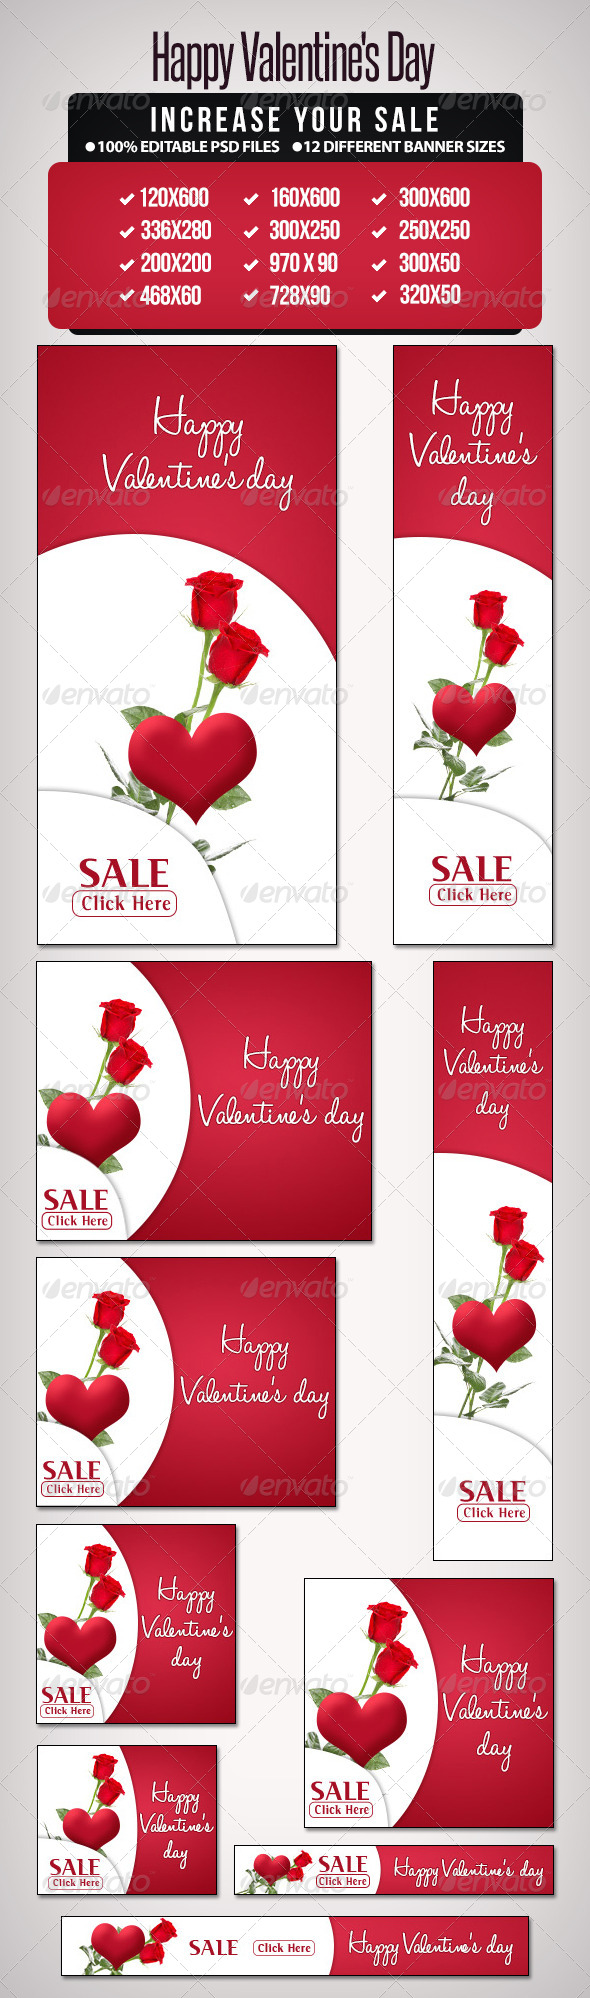 Happy Valentine's Day - Banners & Ads Web Elements